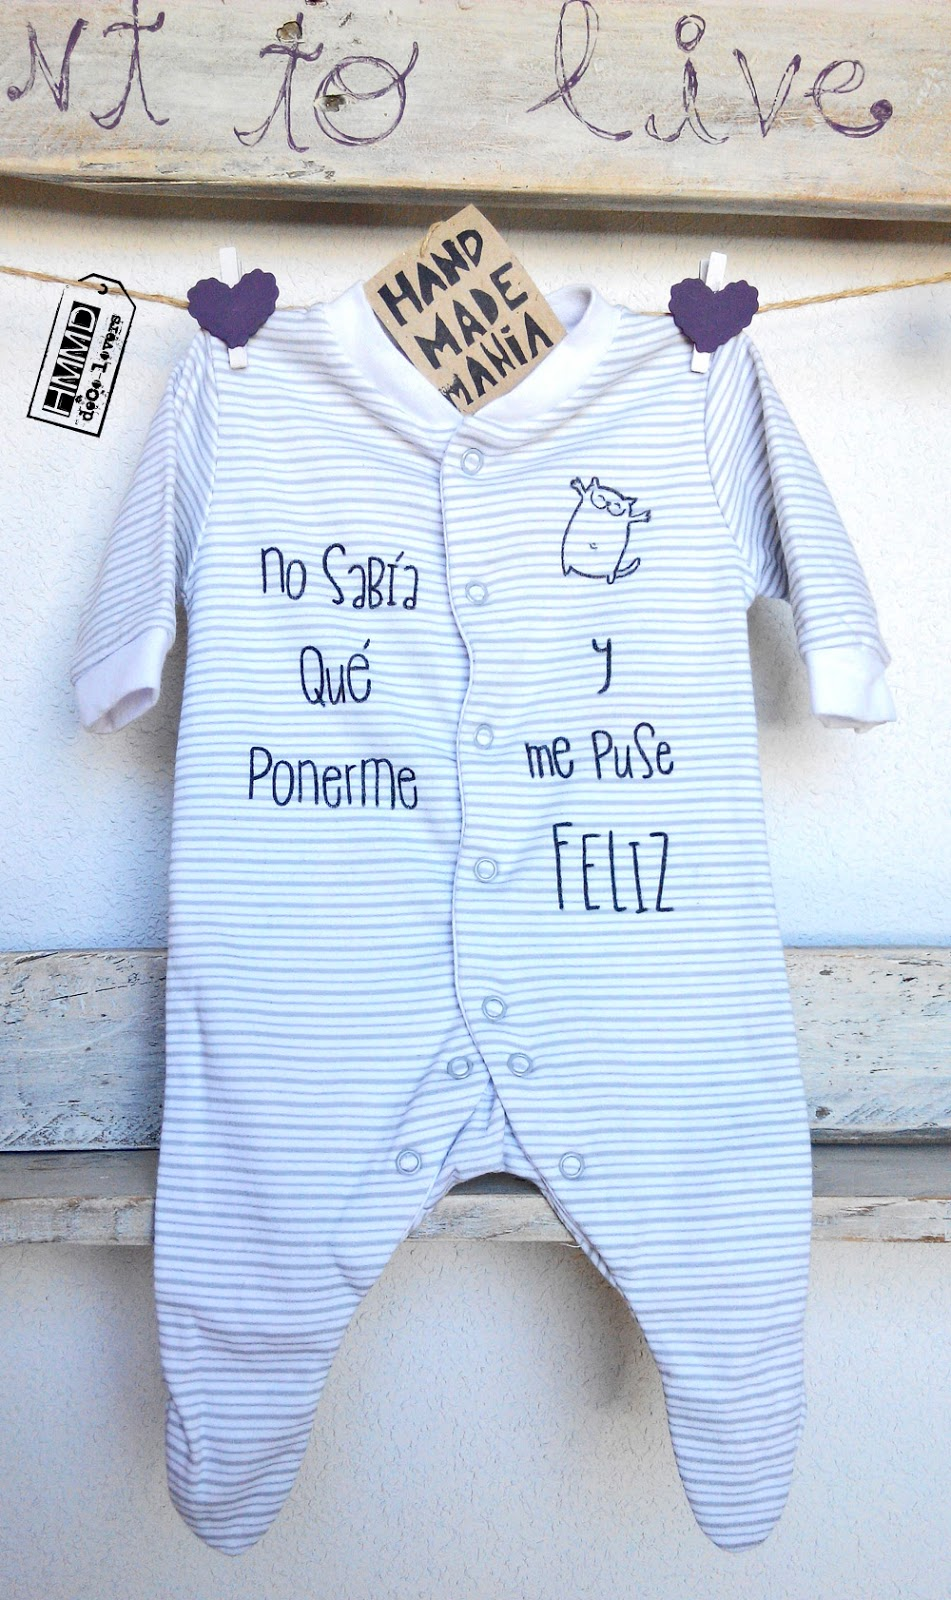 No sabía qué ponerme y me puse feliz. Bodies y pijamas con frases para bebés HMMD Handmademaniadecor, regalo para el día de la madre, día del padre o para recién nacido. Baby body suits and pijamas with phrases by HMMD, ideal for gifts.